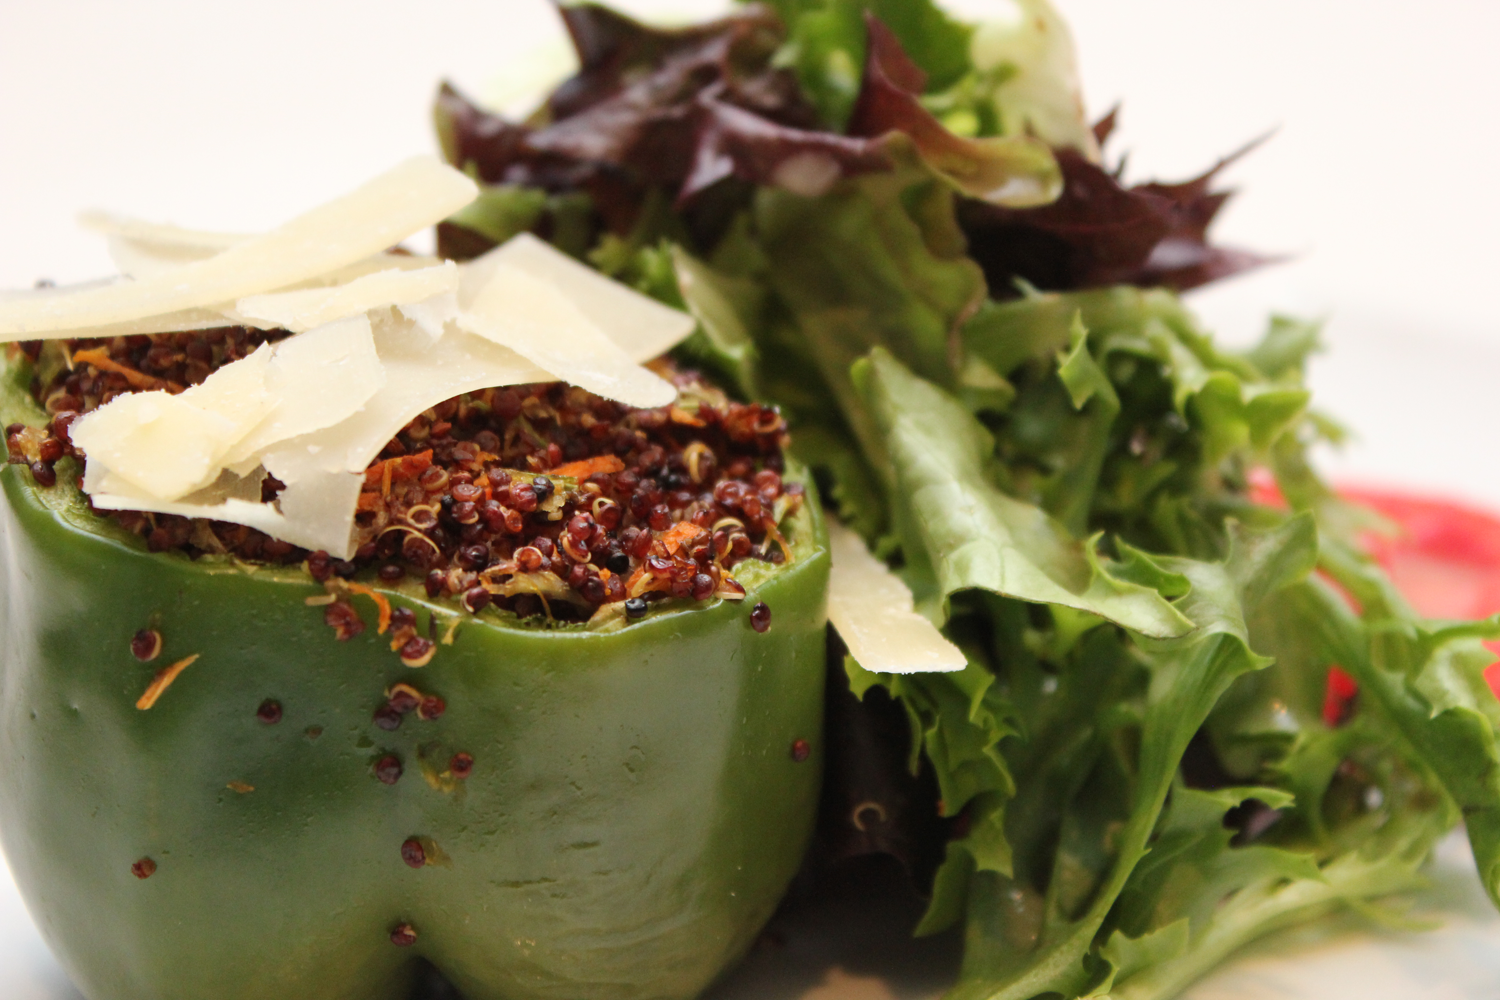 Provenance Café's red quinoa, wild mushroom and parmesan stuffed pepper with local greens and tomatoes.